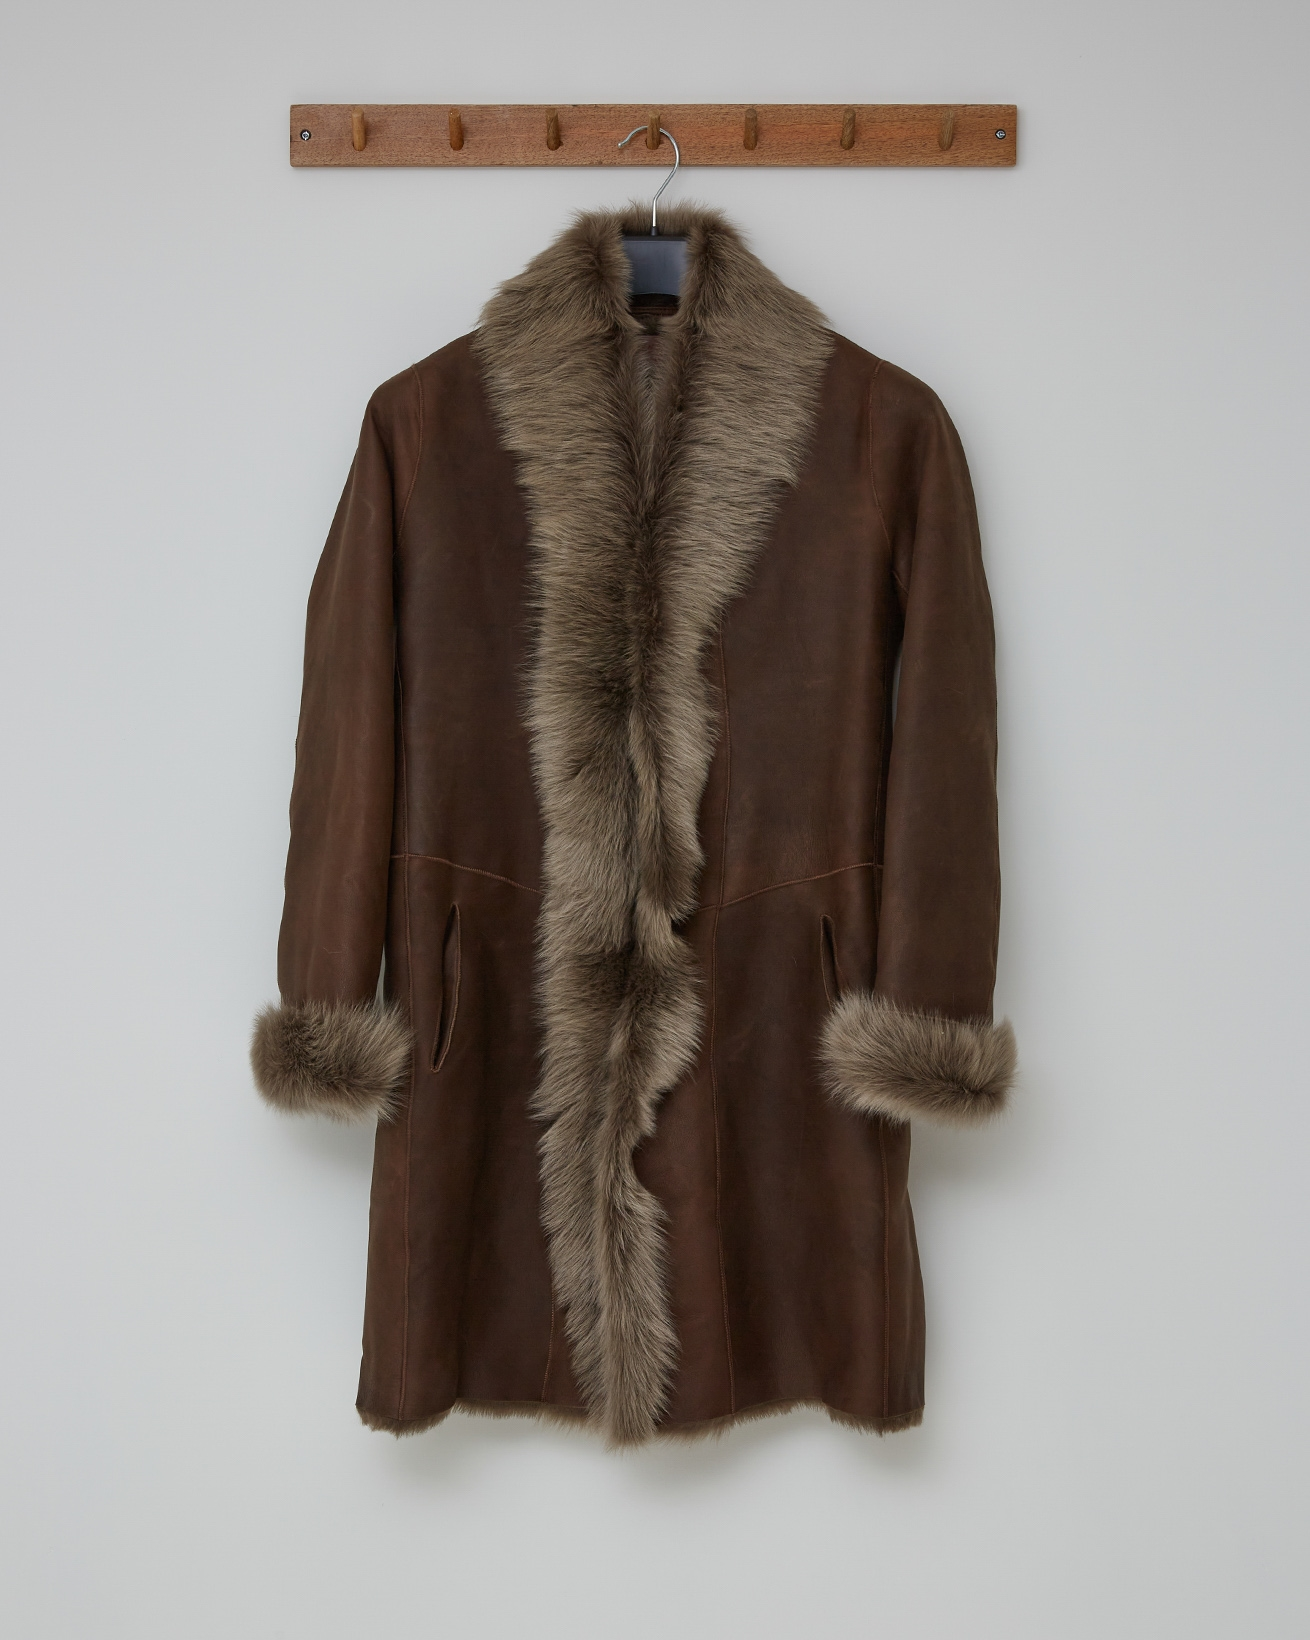 3/4 TOSCANA TRIM COAT - TANNERS BROWN NAPPA - SIZE 8 - 2556